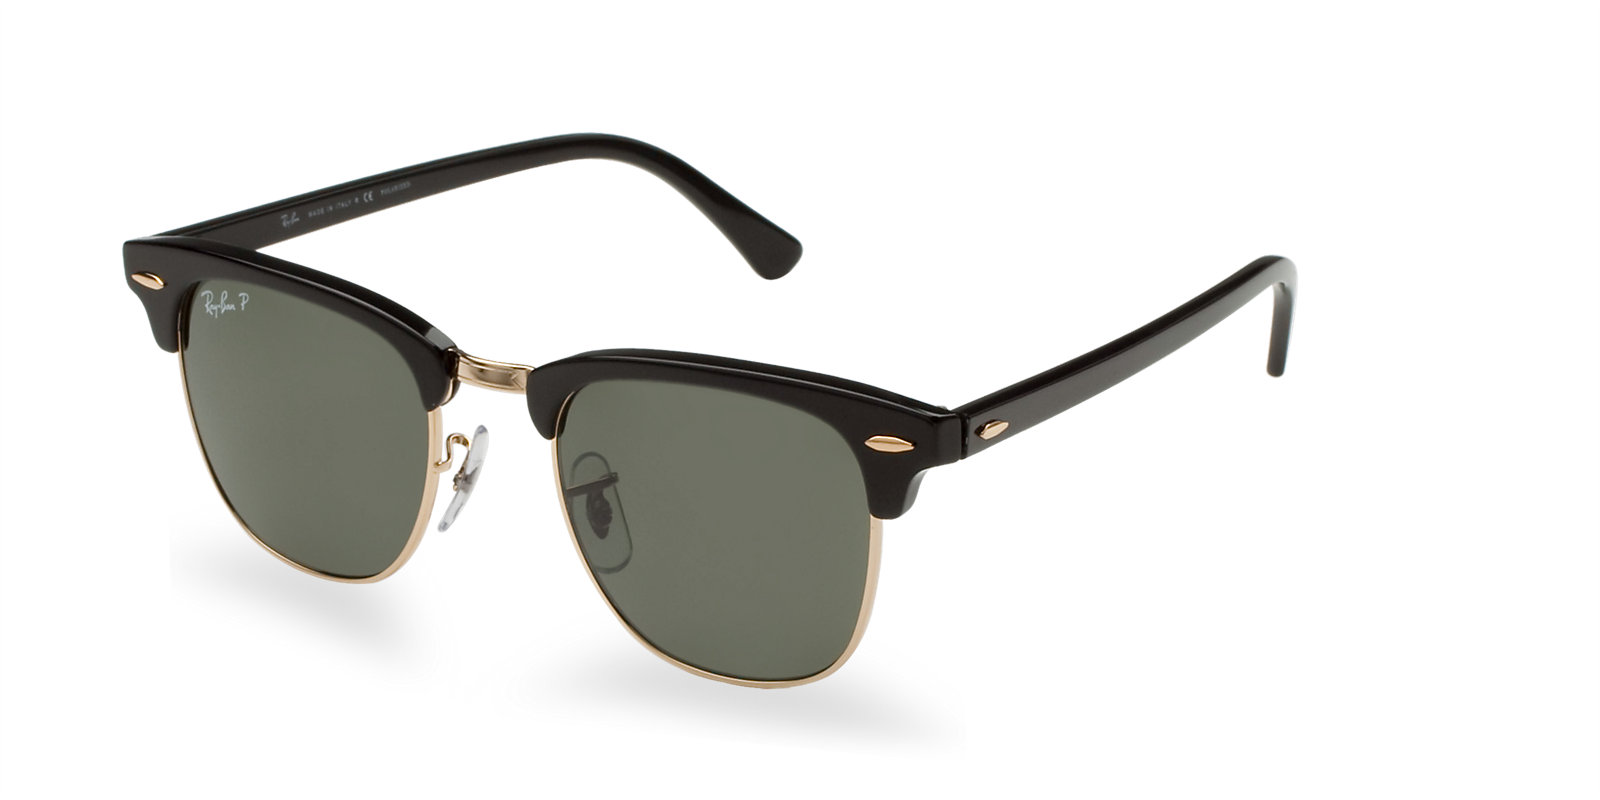 30ab499f35 Previous  Next. Previous  Next. RAY-BAN RB3016 901 58 POLARIZED BLACK CLUBMASTER  SUNGLASSES